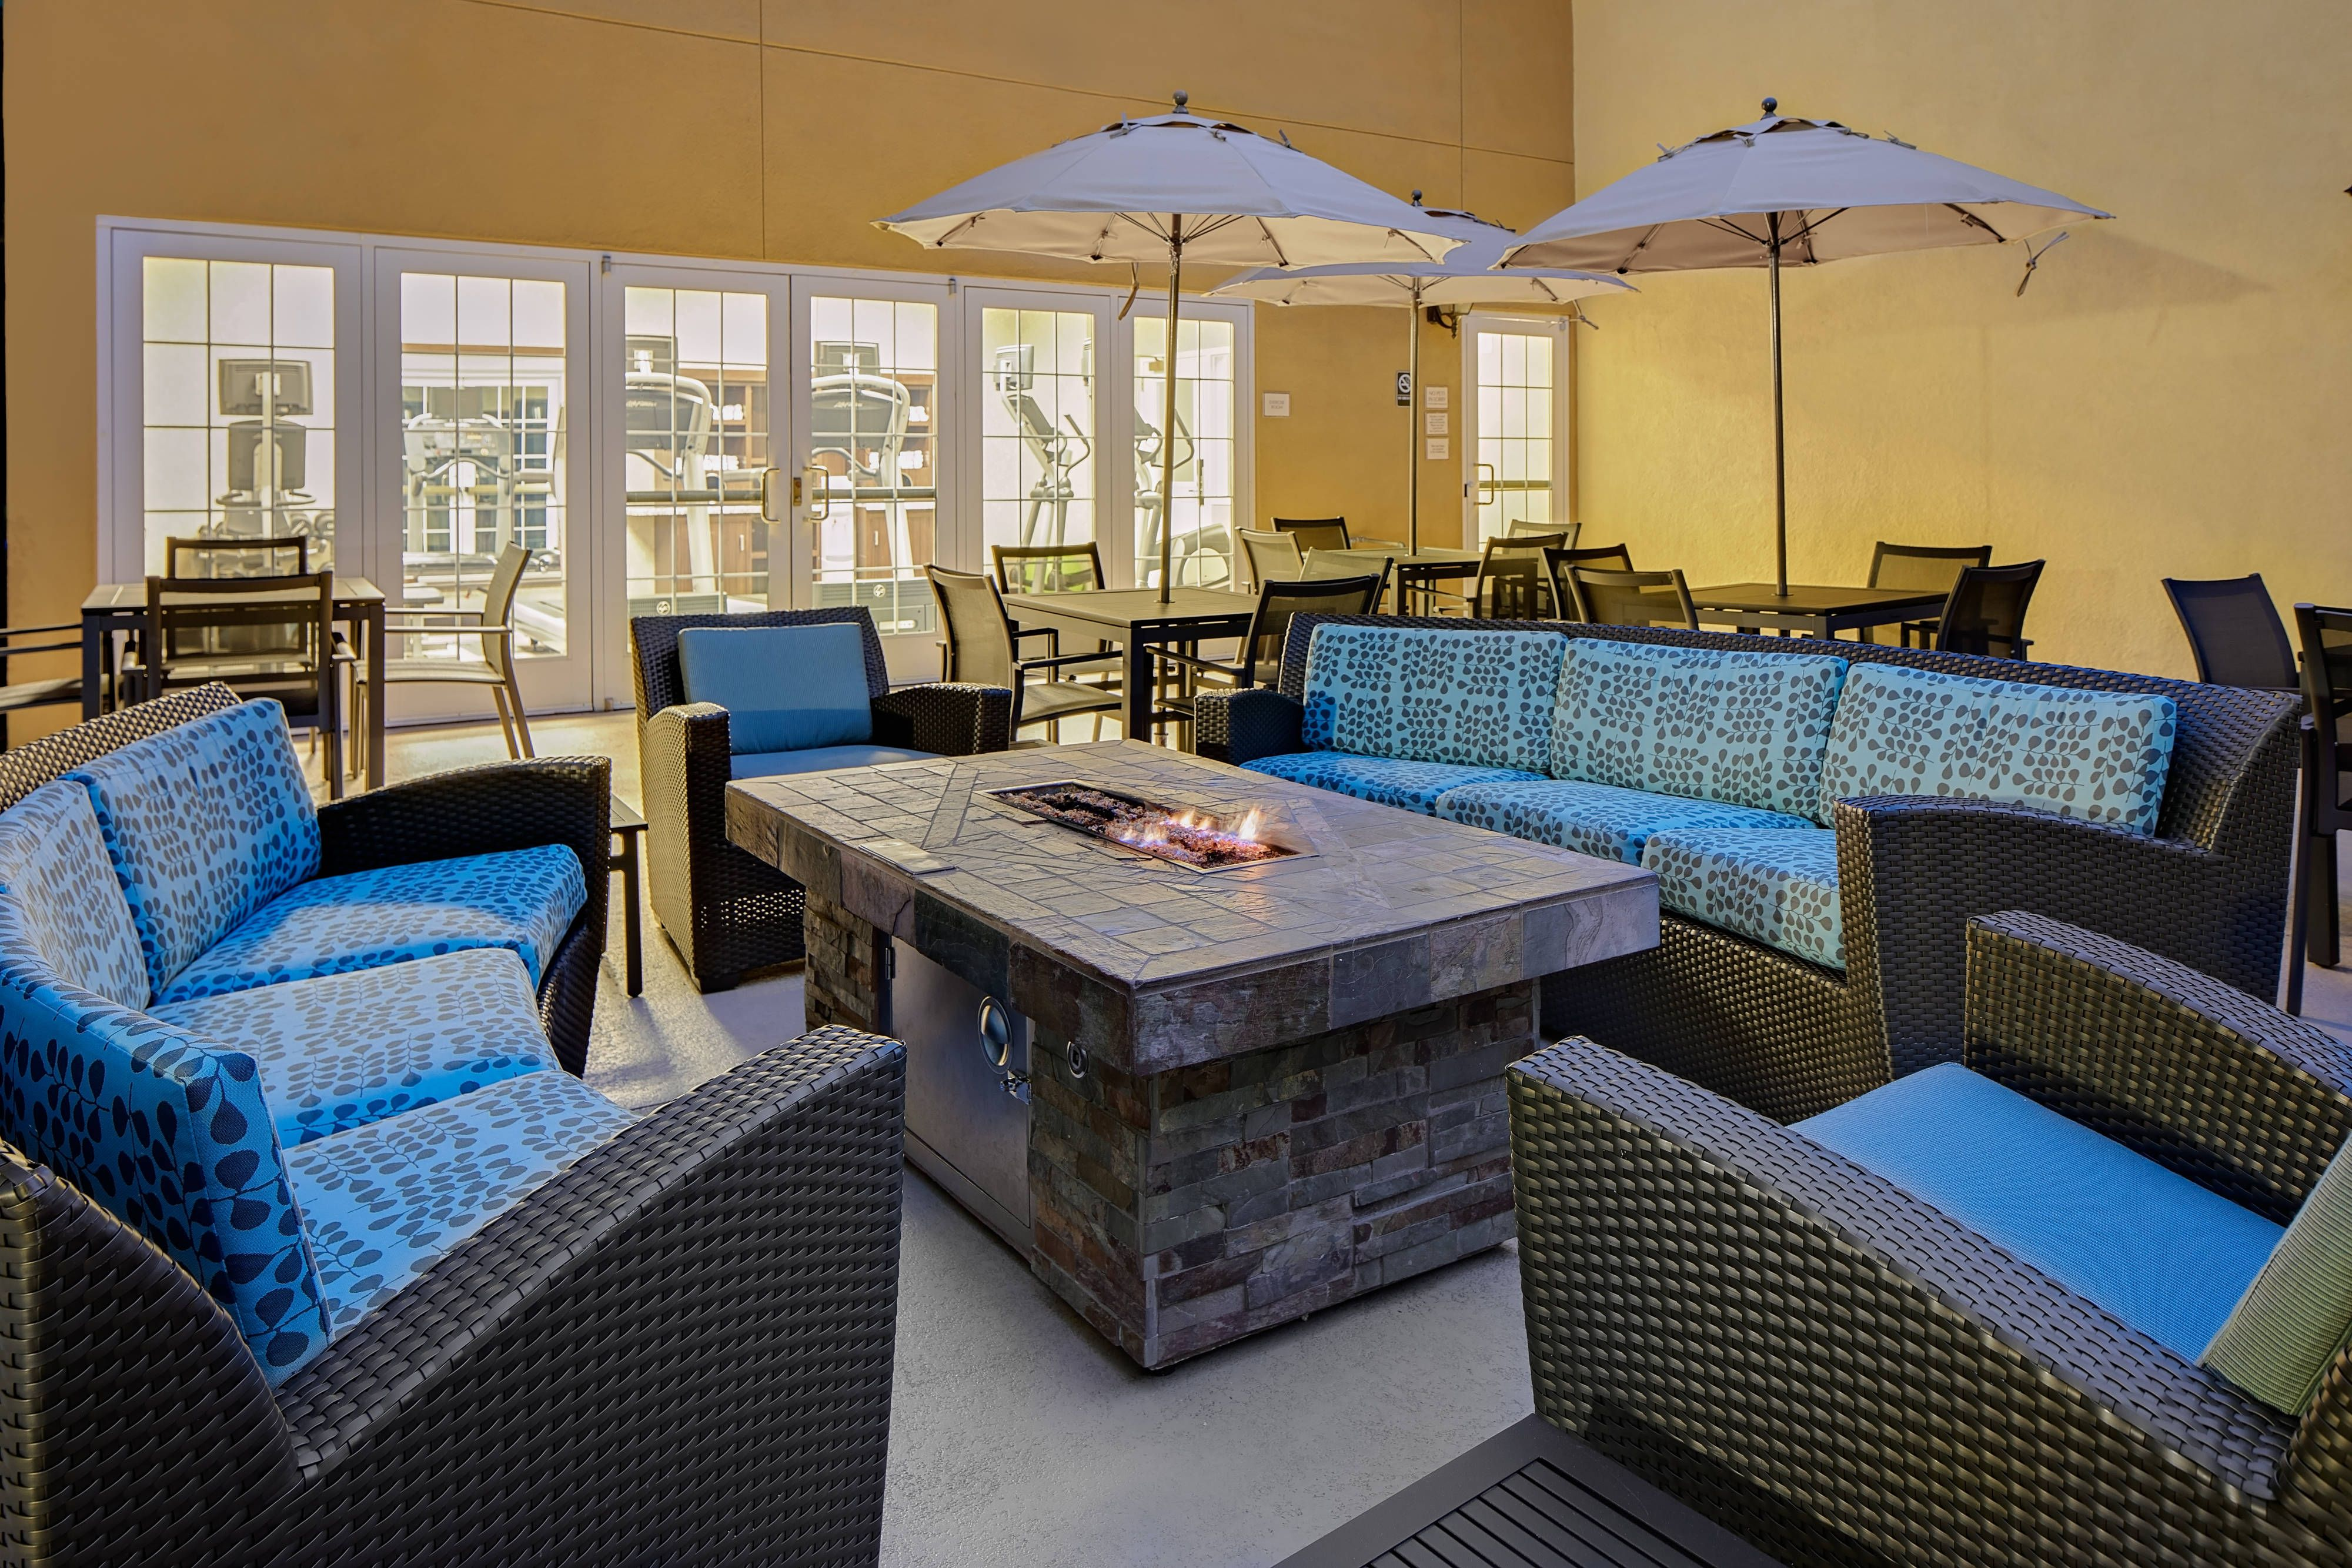 Residence Inn San Diego Mission Valley Patio Guestroom Hotel Relax